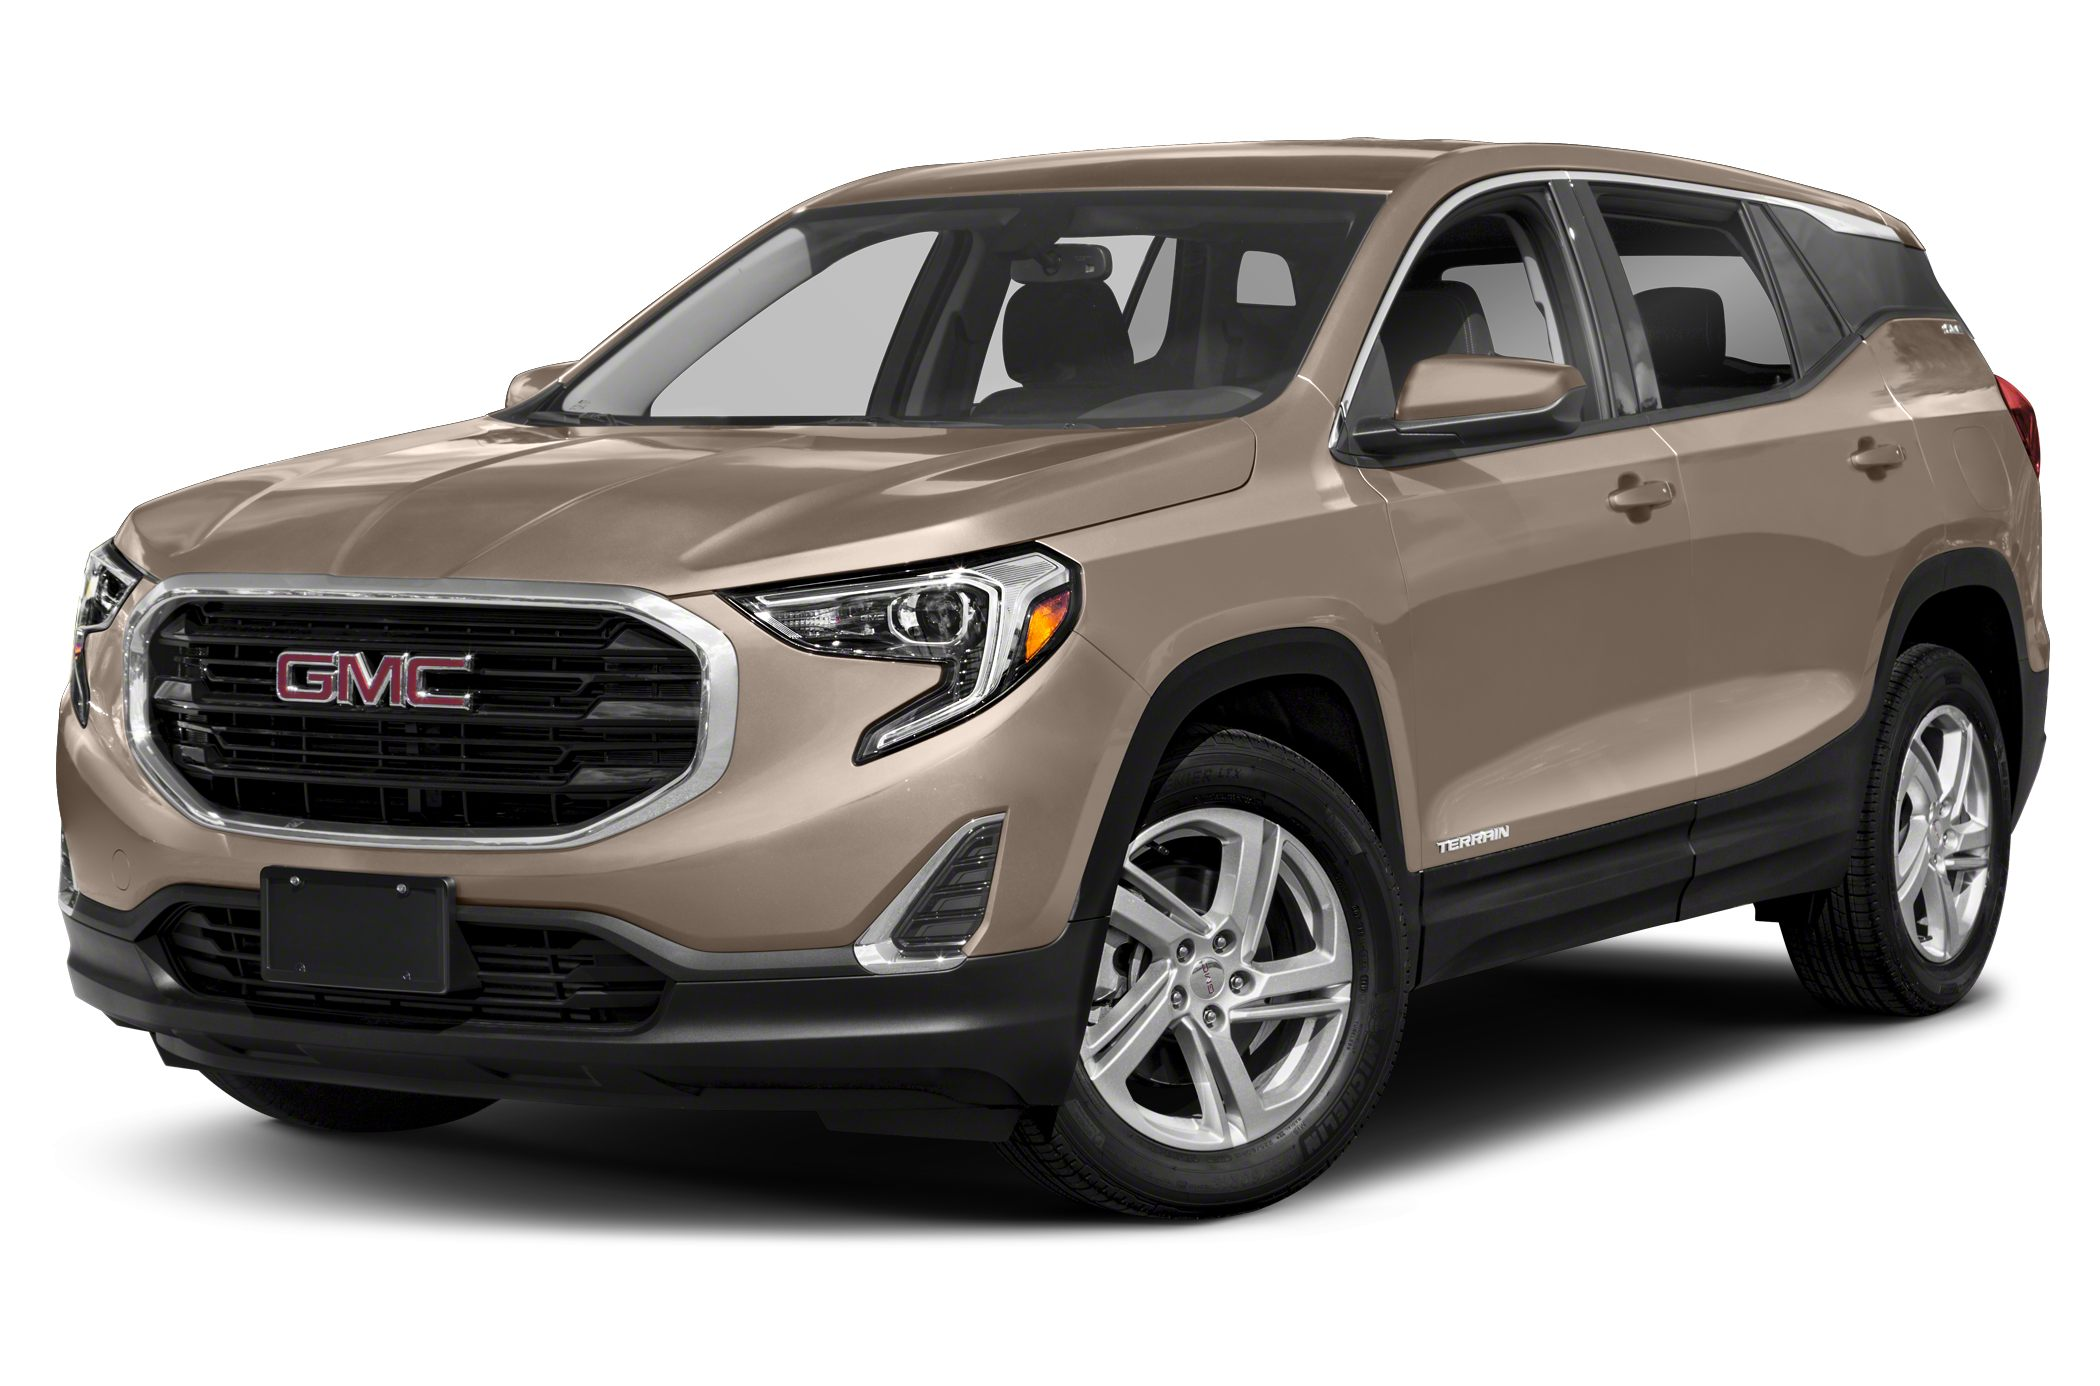 2019 GMC Terrain Offers Style and Flexibility